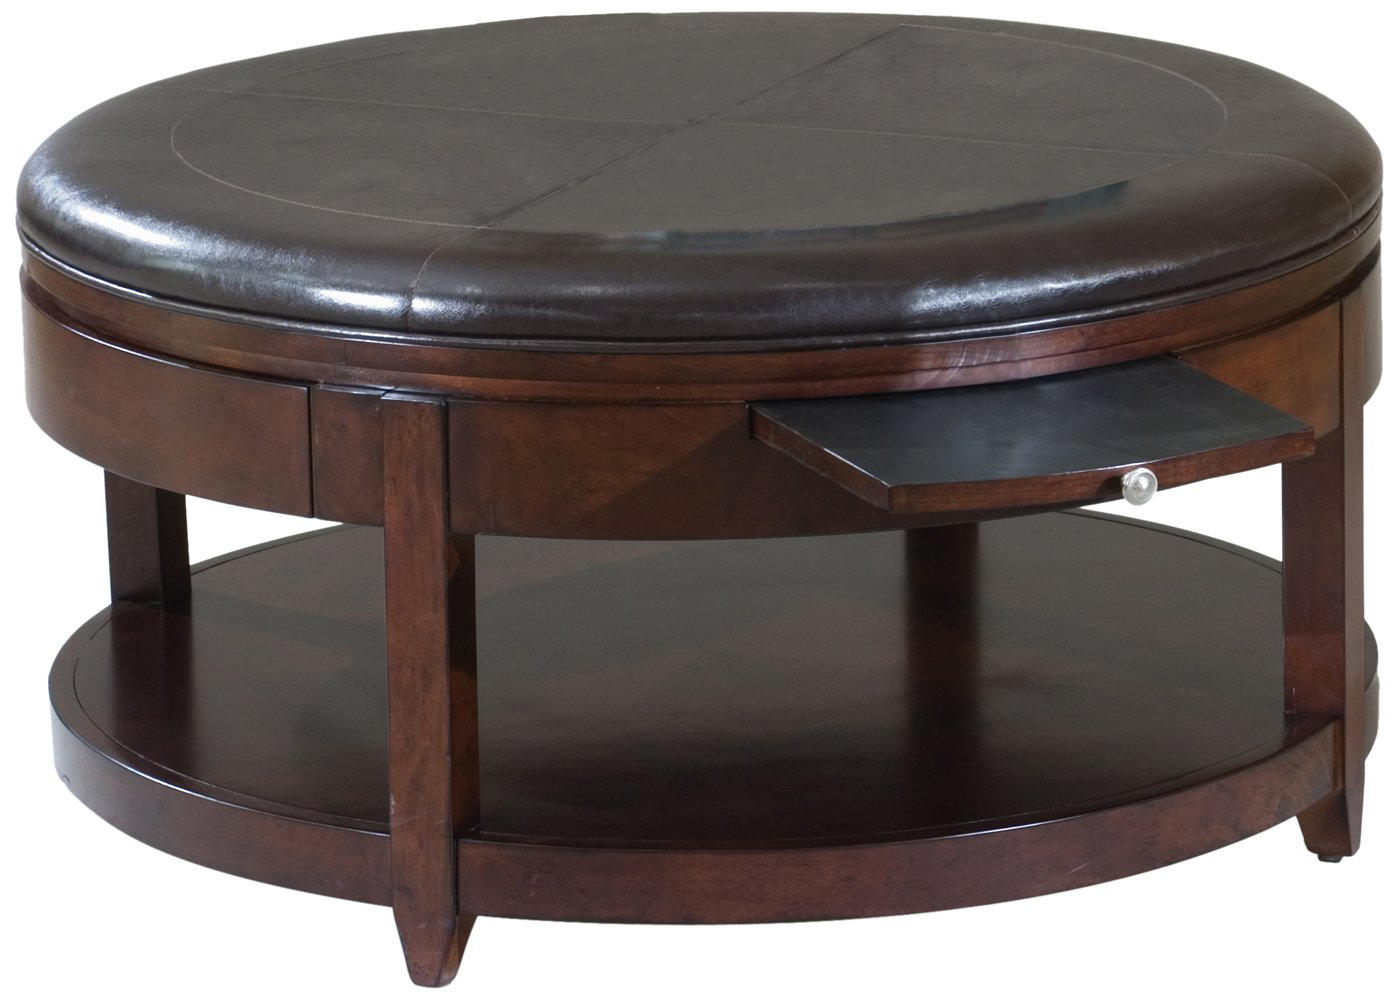 large round tufted leather ottomans with storage olivia 39 s place